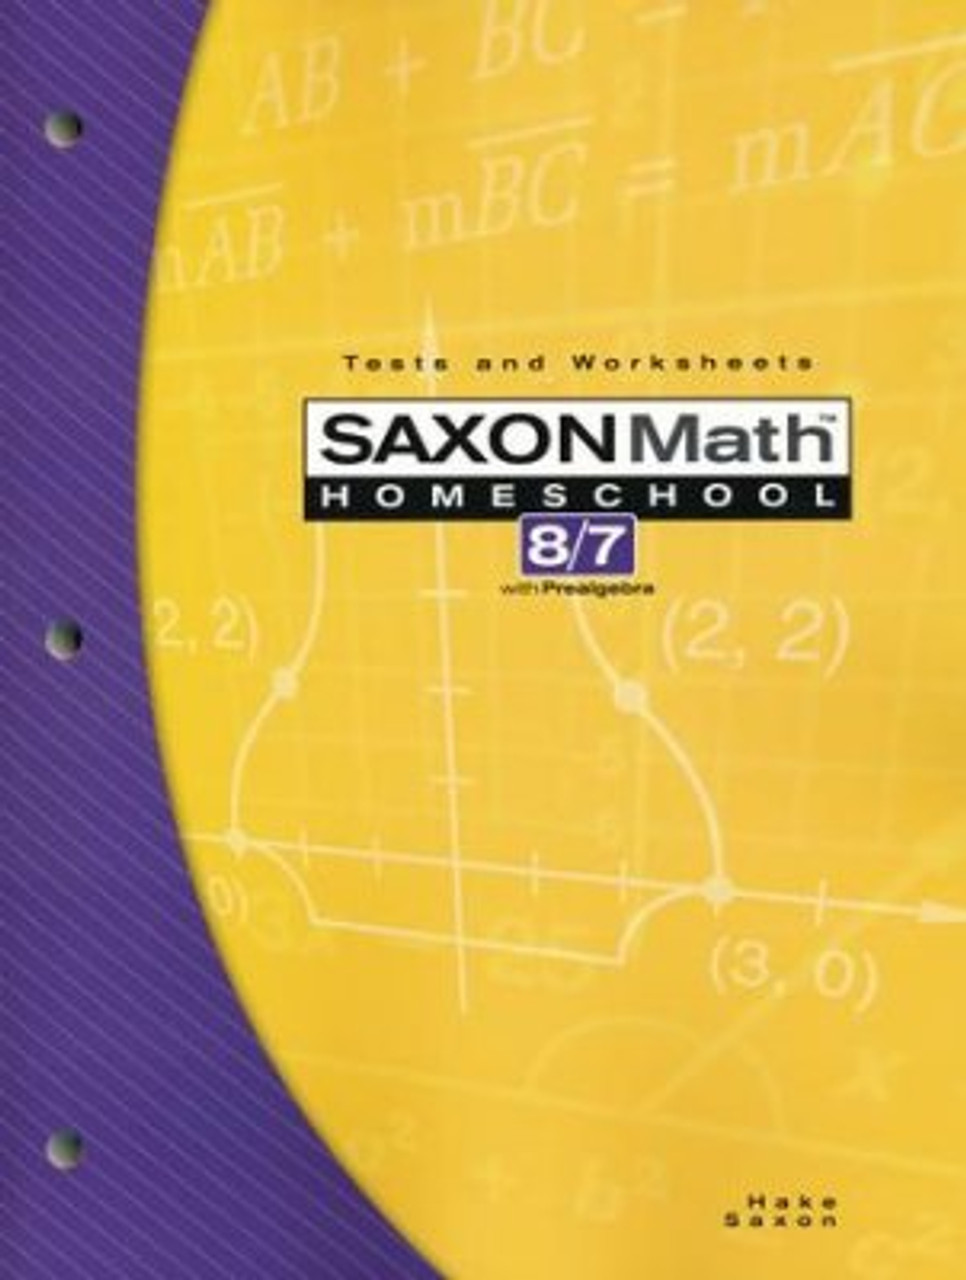 Saxon Math 8/7 3rd Edition Tests and Worksheets - Classroom Resource Center [ 1280 x 966 Pixel ]